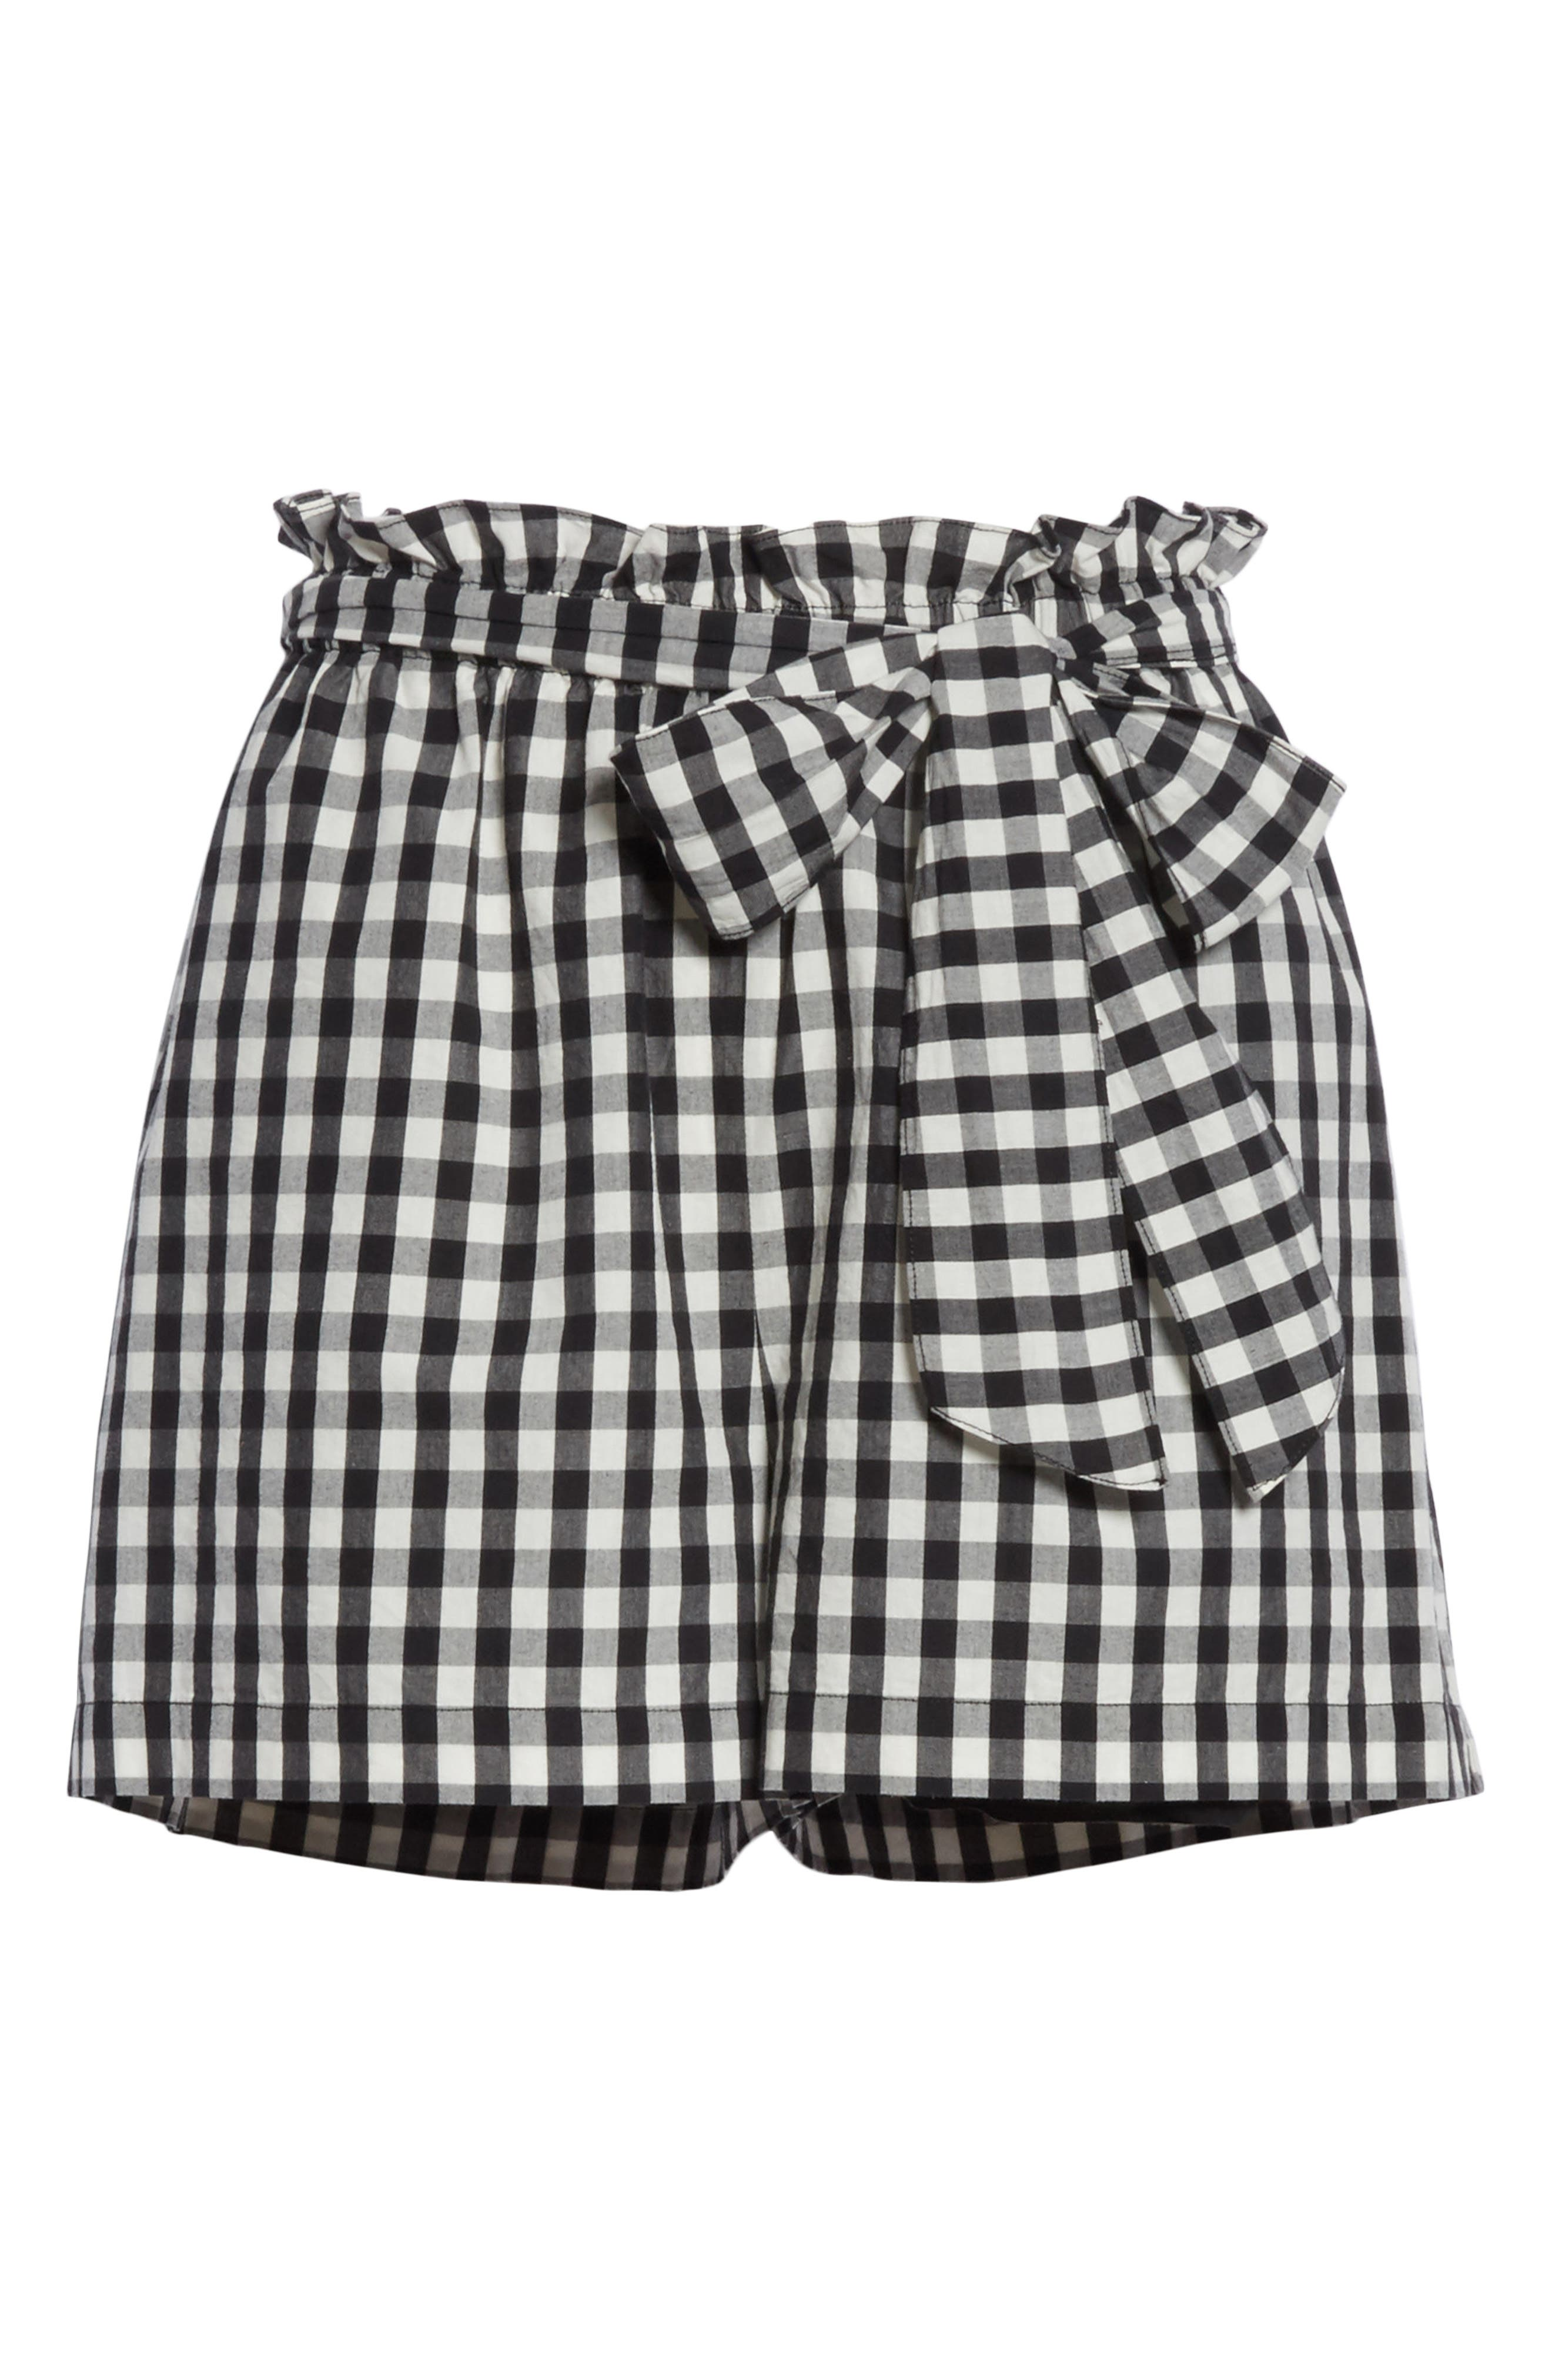 JOIE,                             Cleantha Gingham Cotton Shorts,                             Alternate thumbnail 6, color,                             001